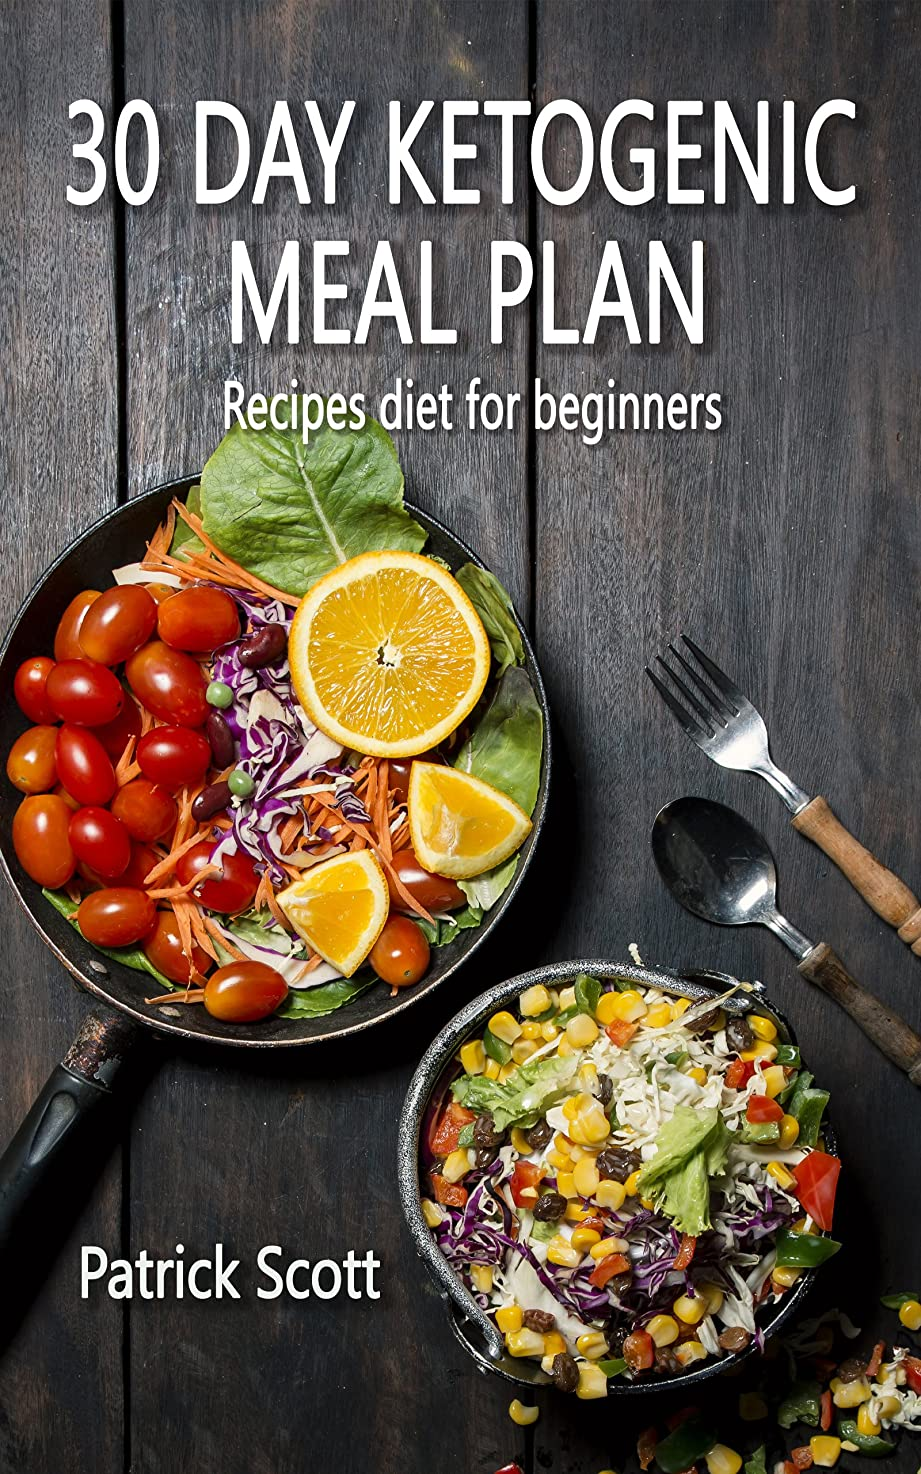 30 DAY KETOGENIC MEAL PLAN: A recipes diet for beginners (English Edition)